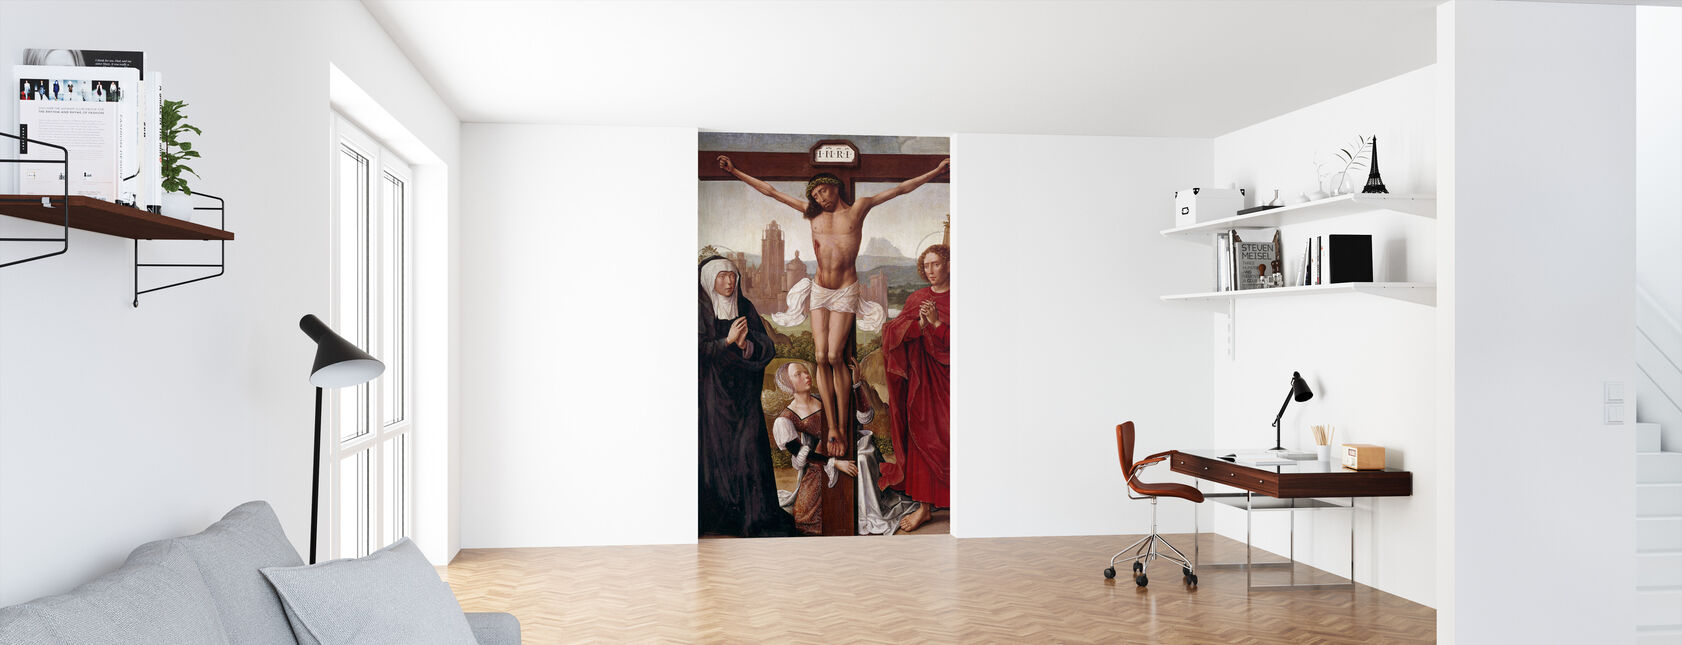 Crucifixion - Wallpaper - Office